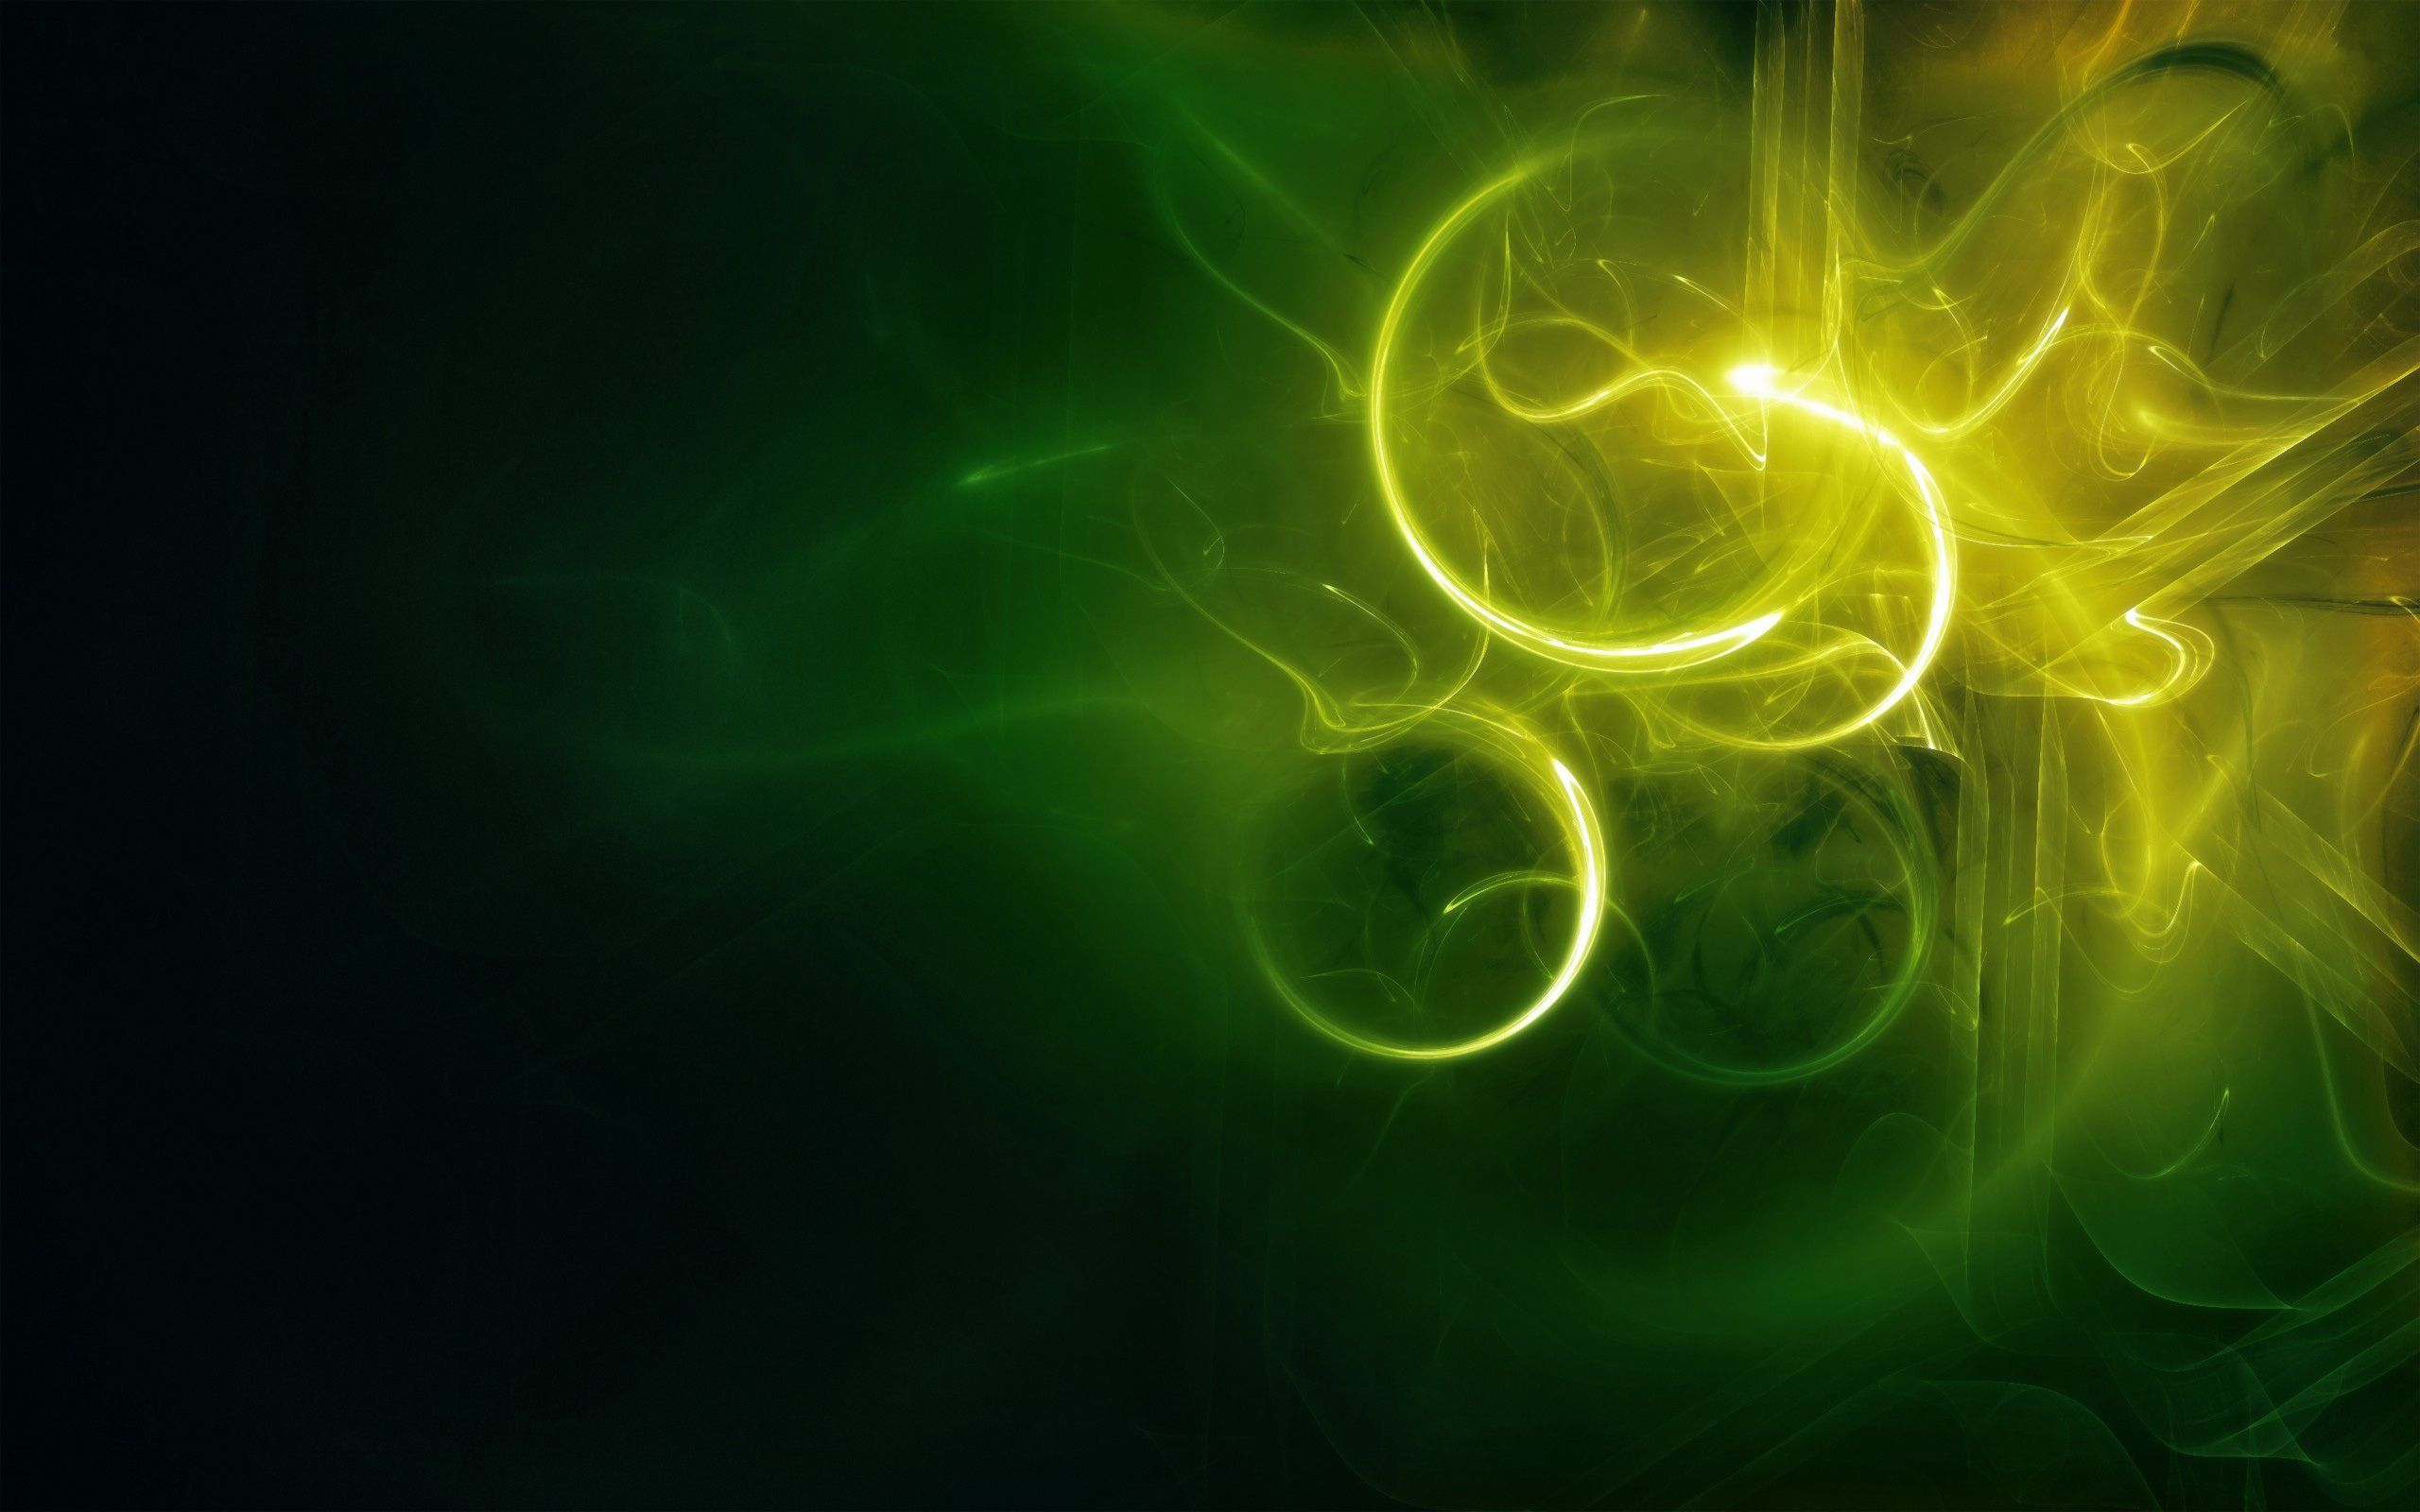 Green Backgrounds Hd Gold Abstract Wallpaper Drawing Wallpaper